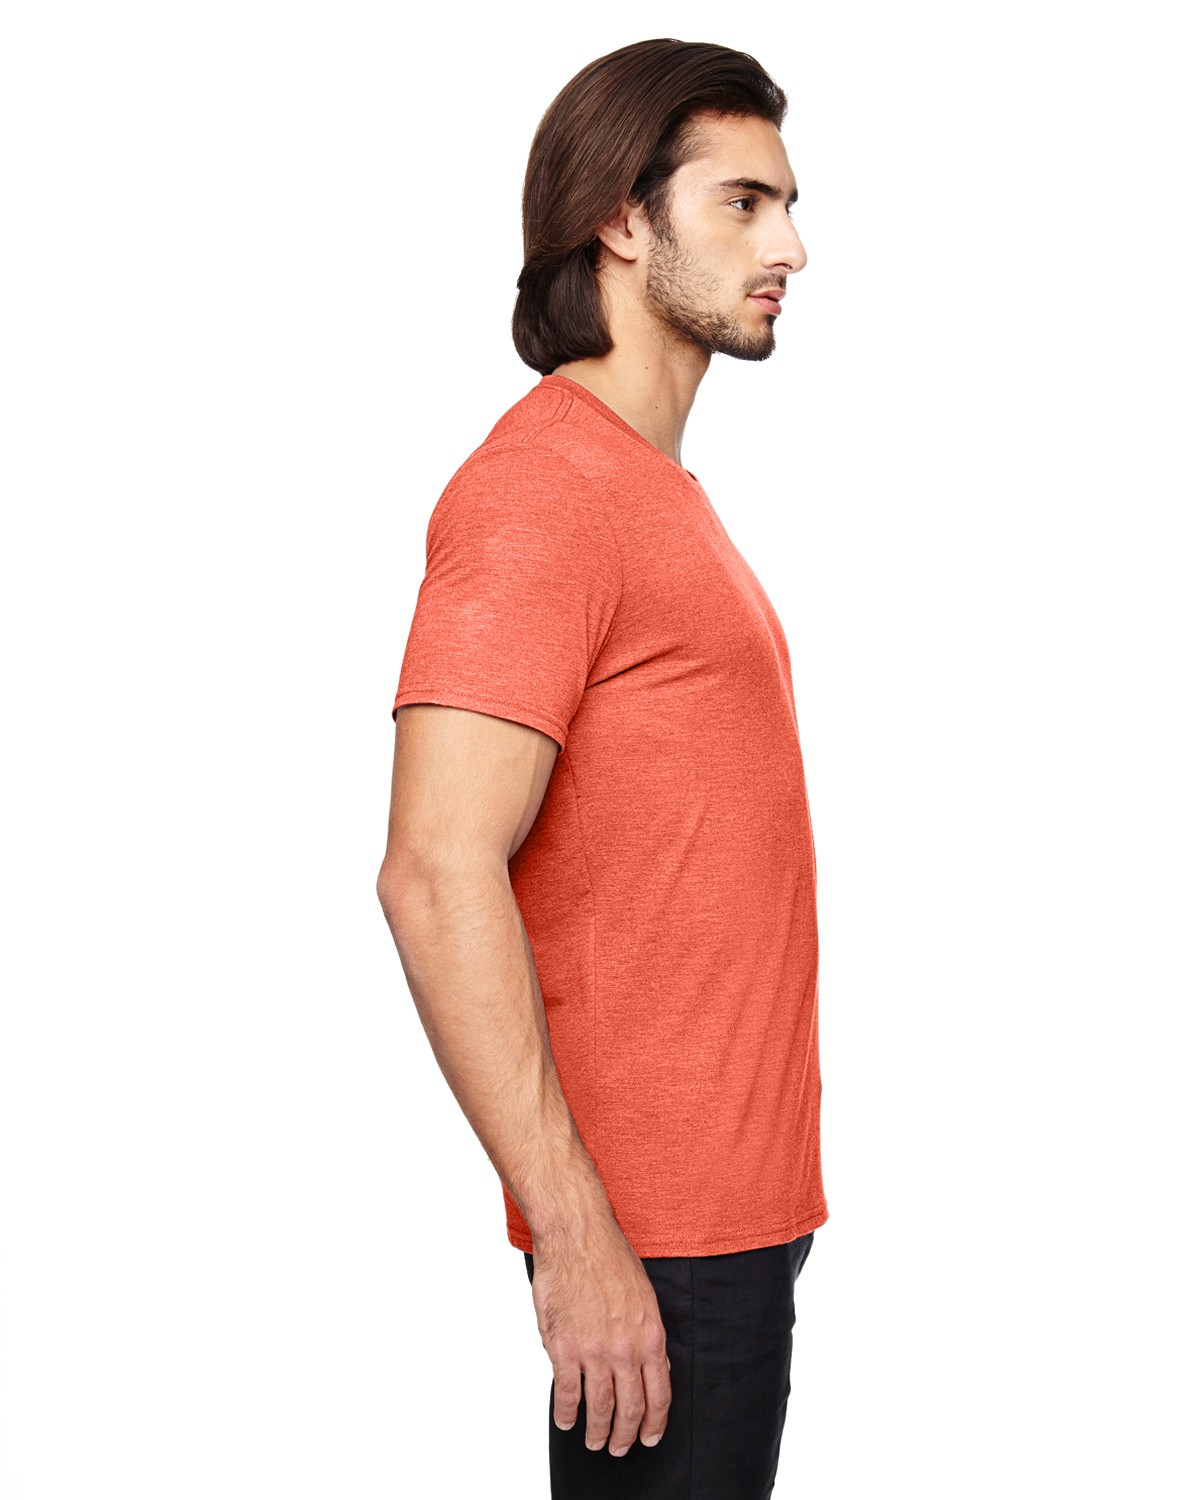 6750 Anvil HEATHER ORANGE